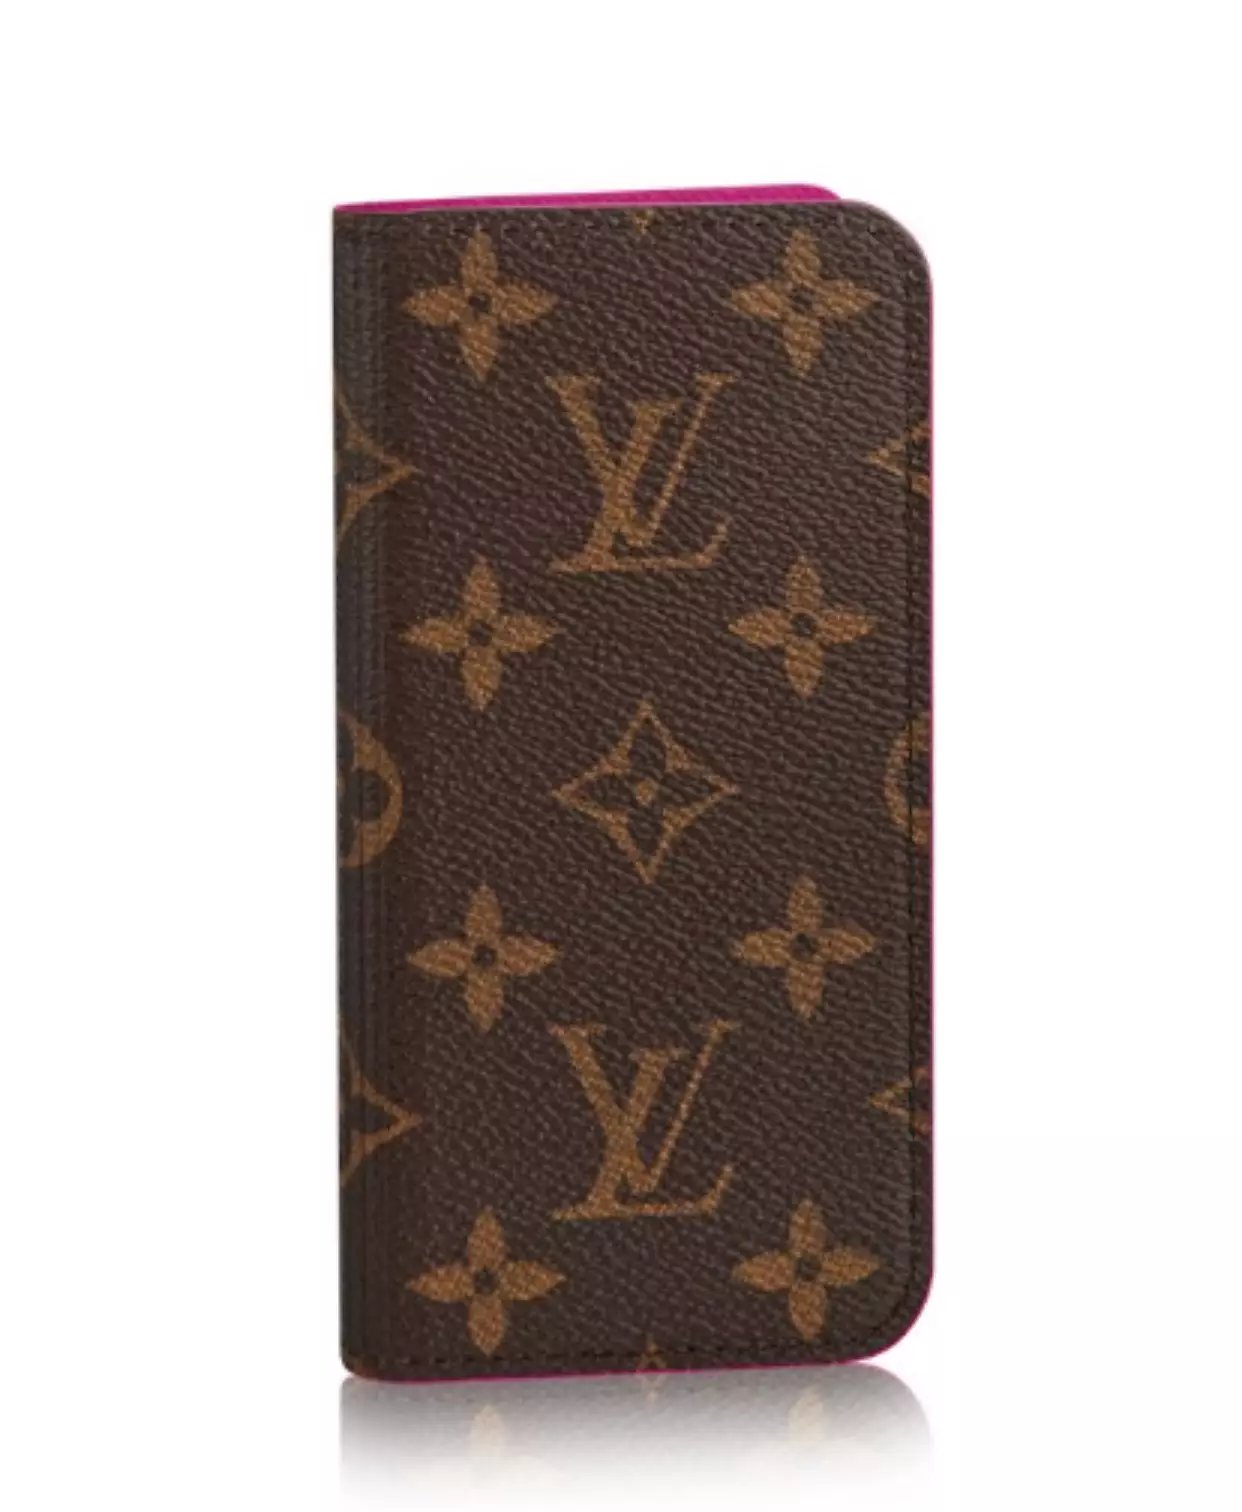 iphone lederhülle handyhüllen für iphone Louis Vuitton iphone7 hülle original iphone 7 a7 foto handyhülle samsung galaxy s3 hülle 7lber machen i phine 6 iphone 7 hüle flip ca7 für iphone 7